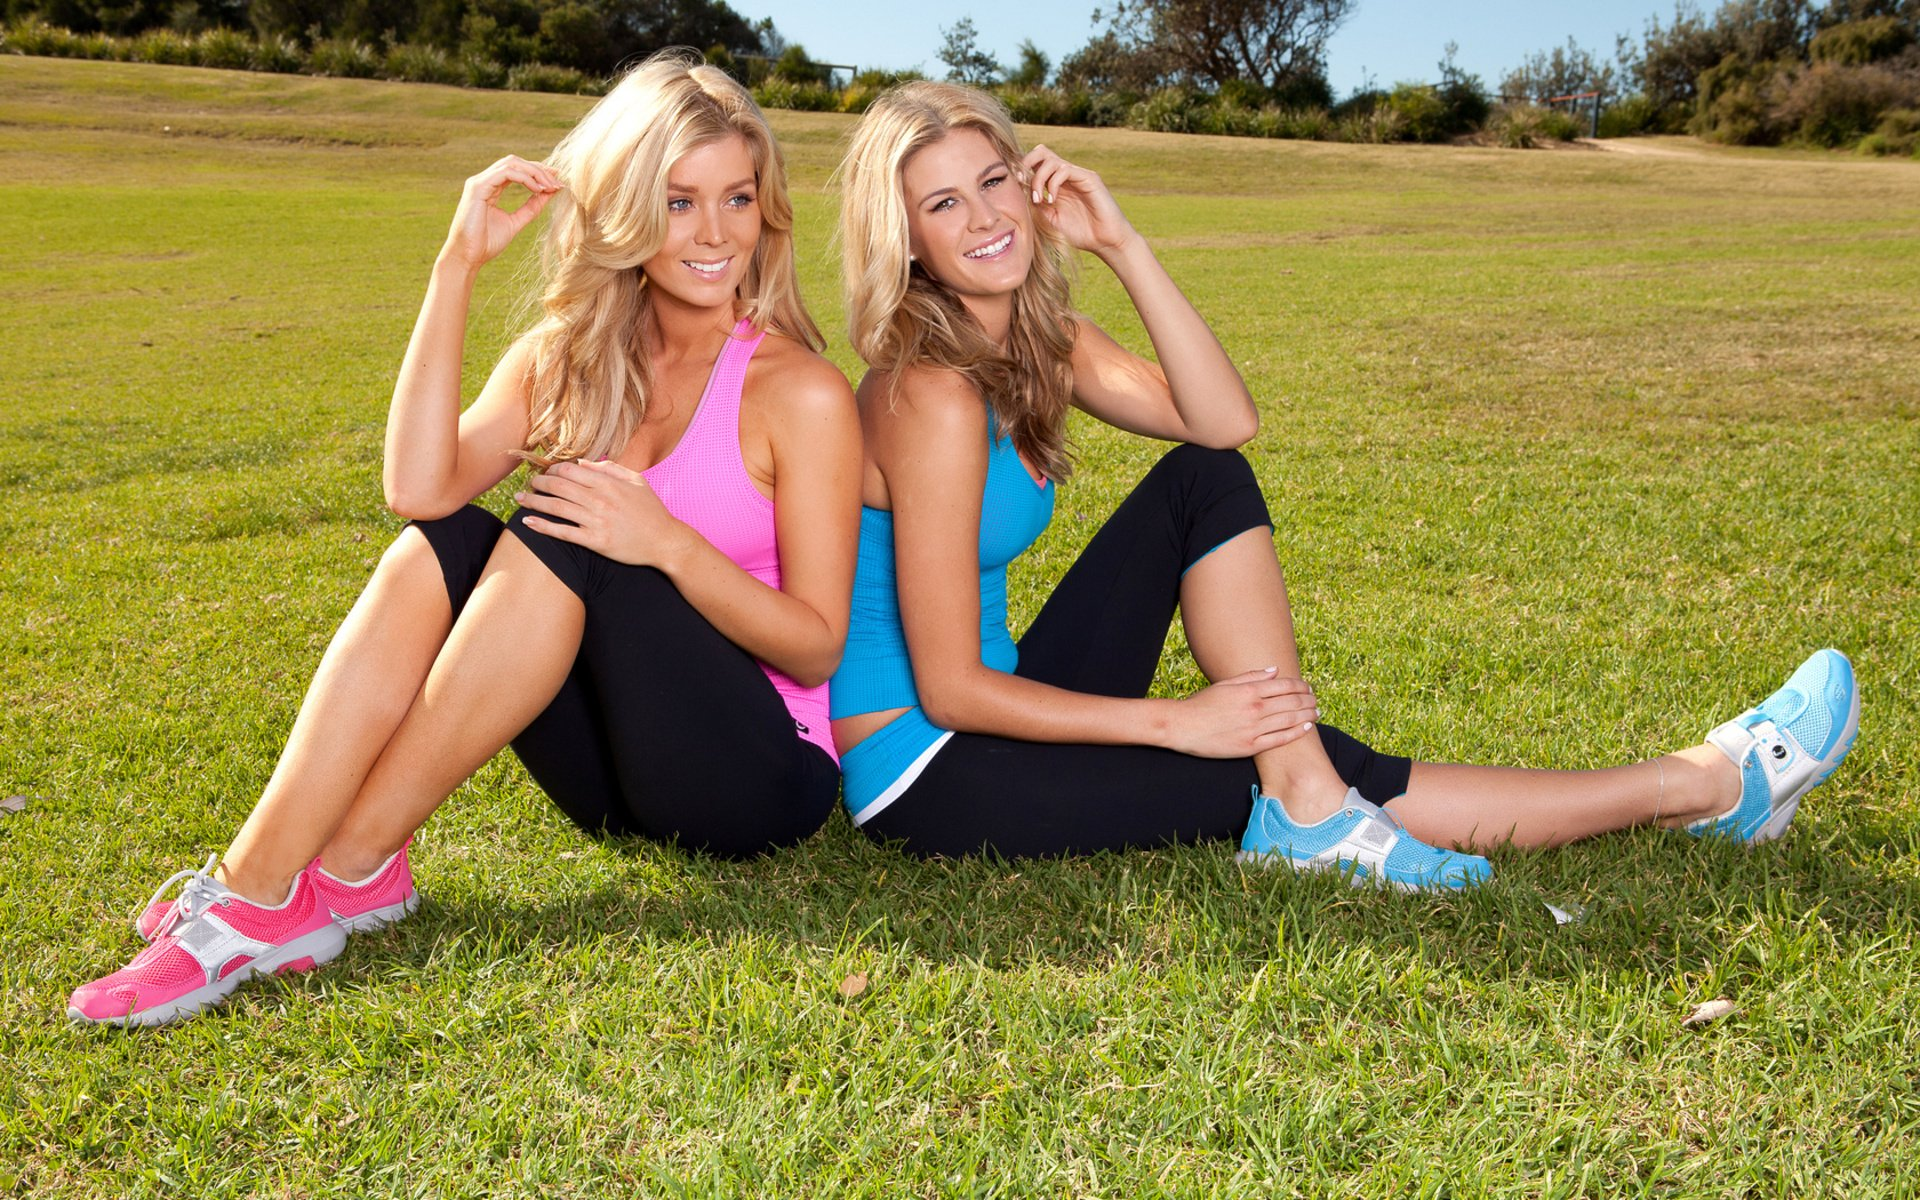 Sheridyn Fisher and Kristie Mckeon HD Wallpaper Background Image 1920x1200